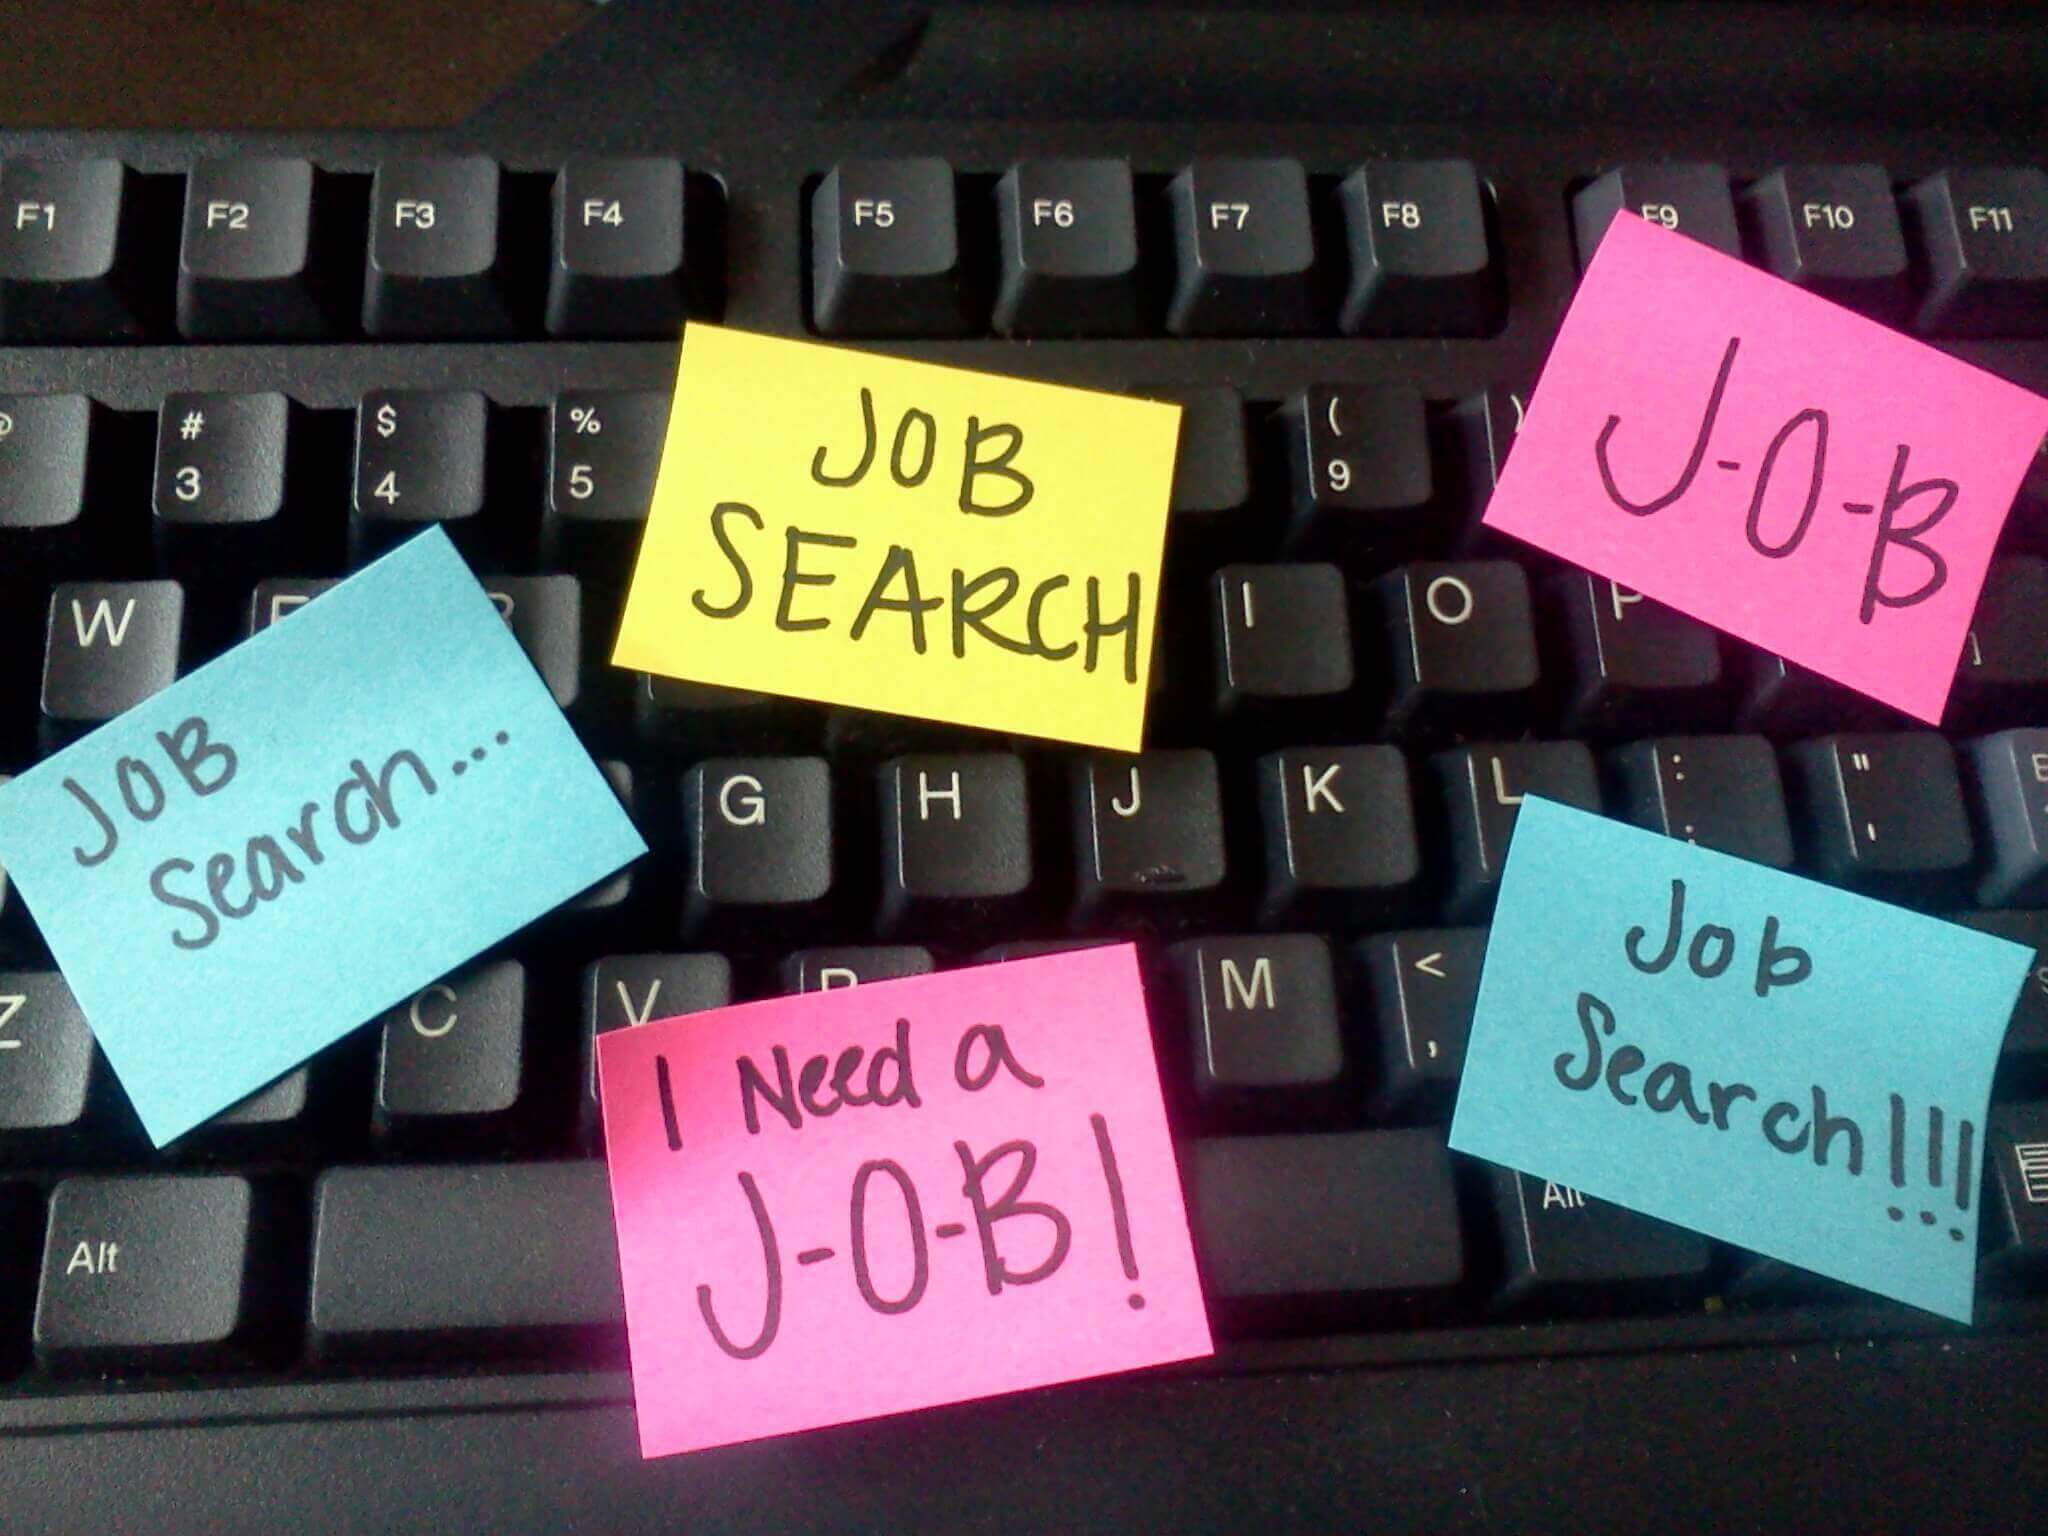 A Planned approach towards Job Search